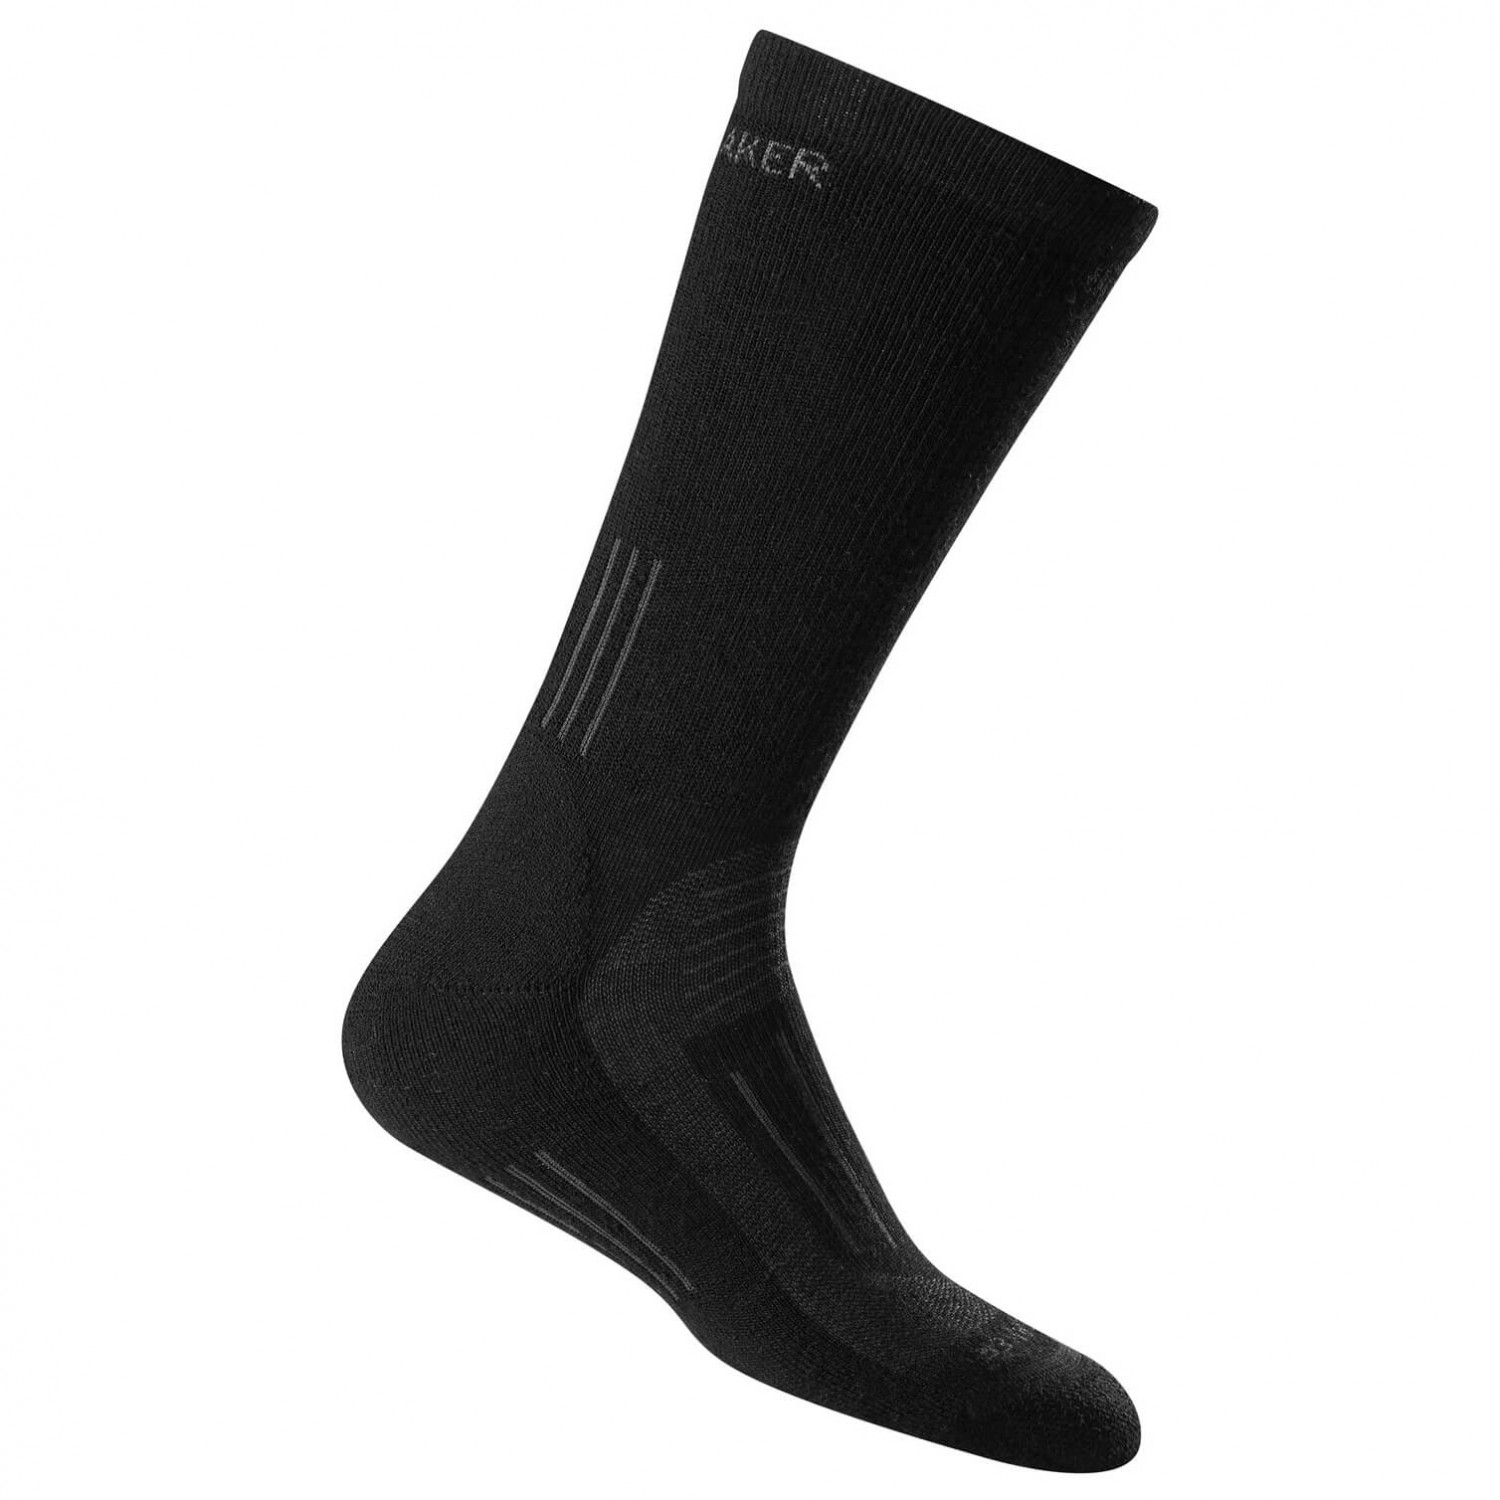 Icebreaker - Women's Hike Medium Crew - Trekkingsocken Black